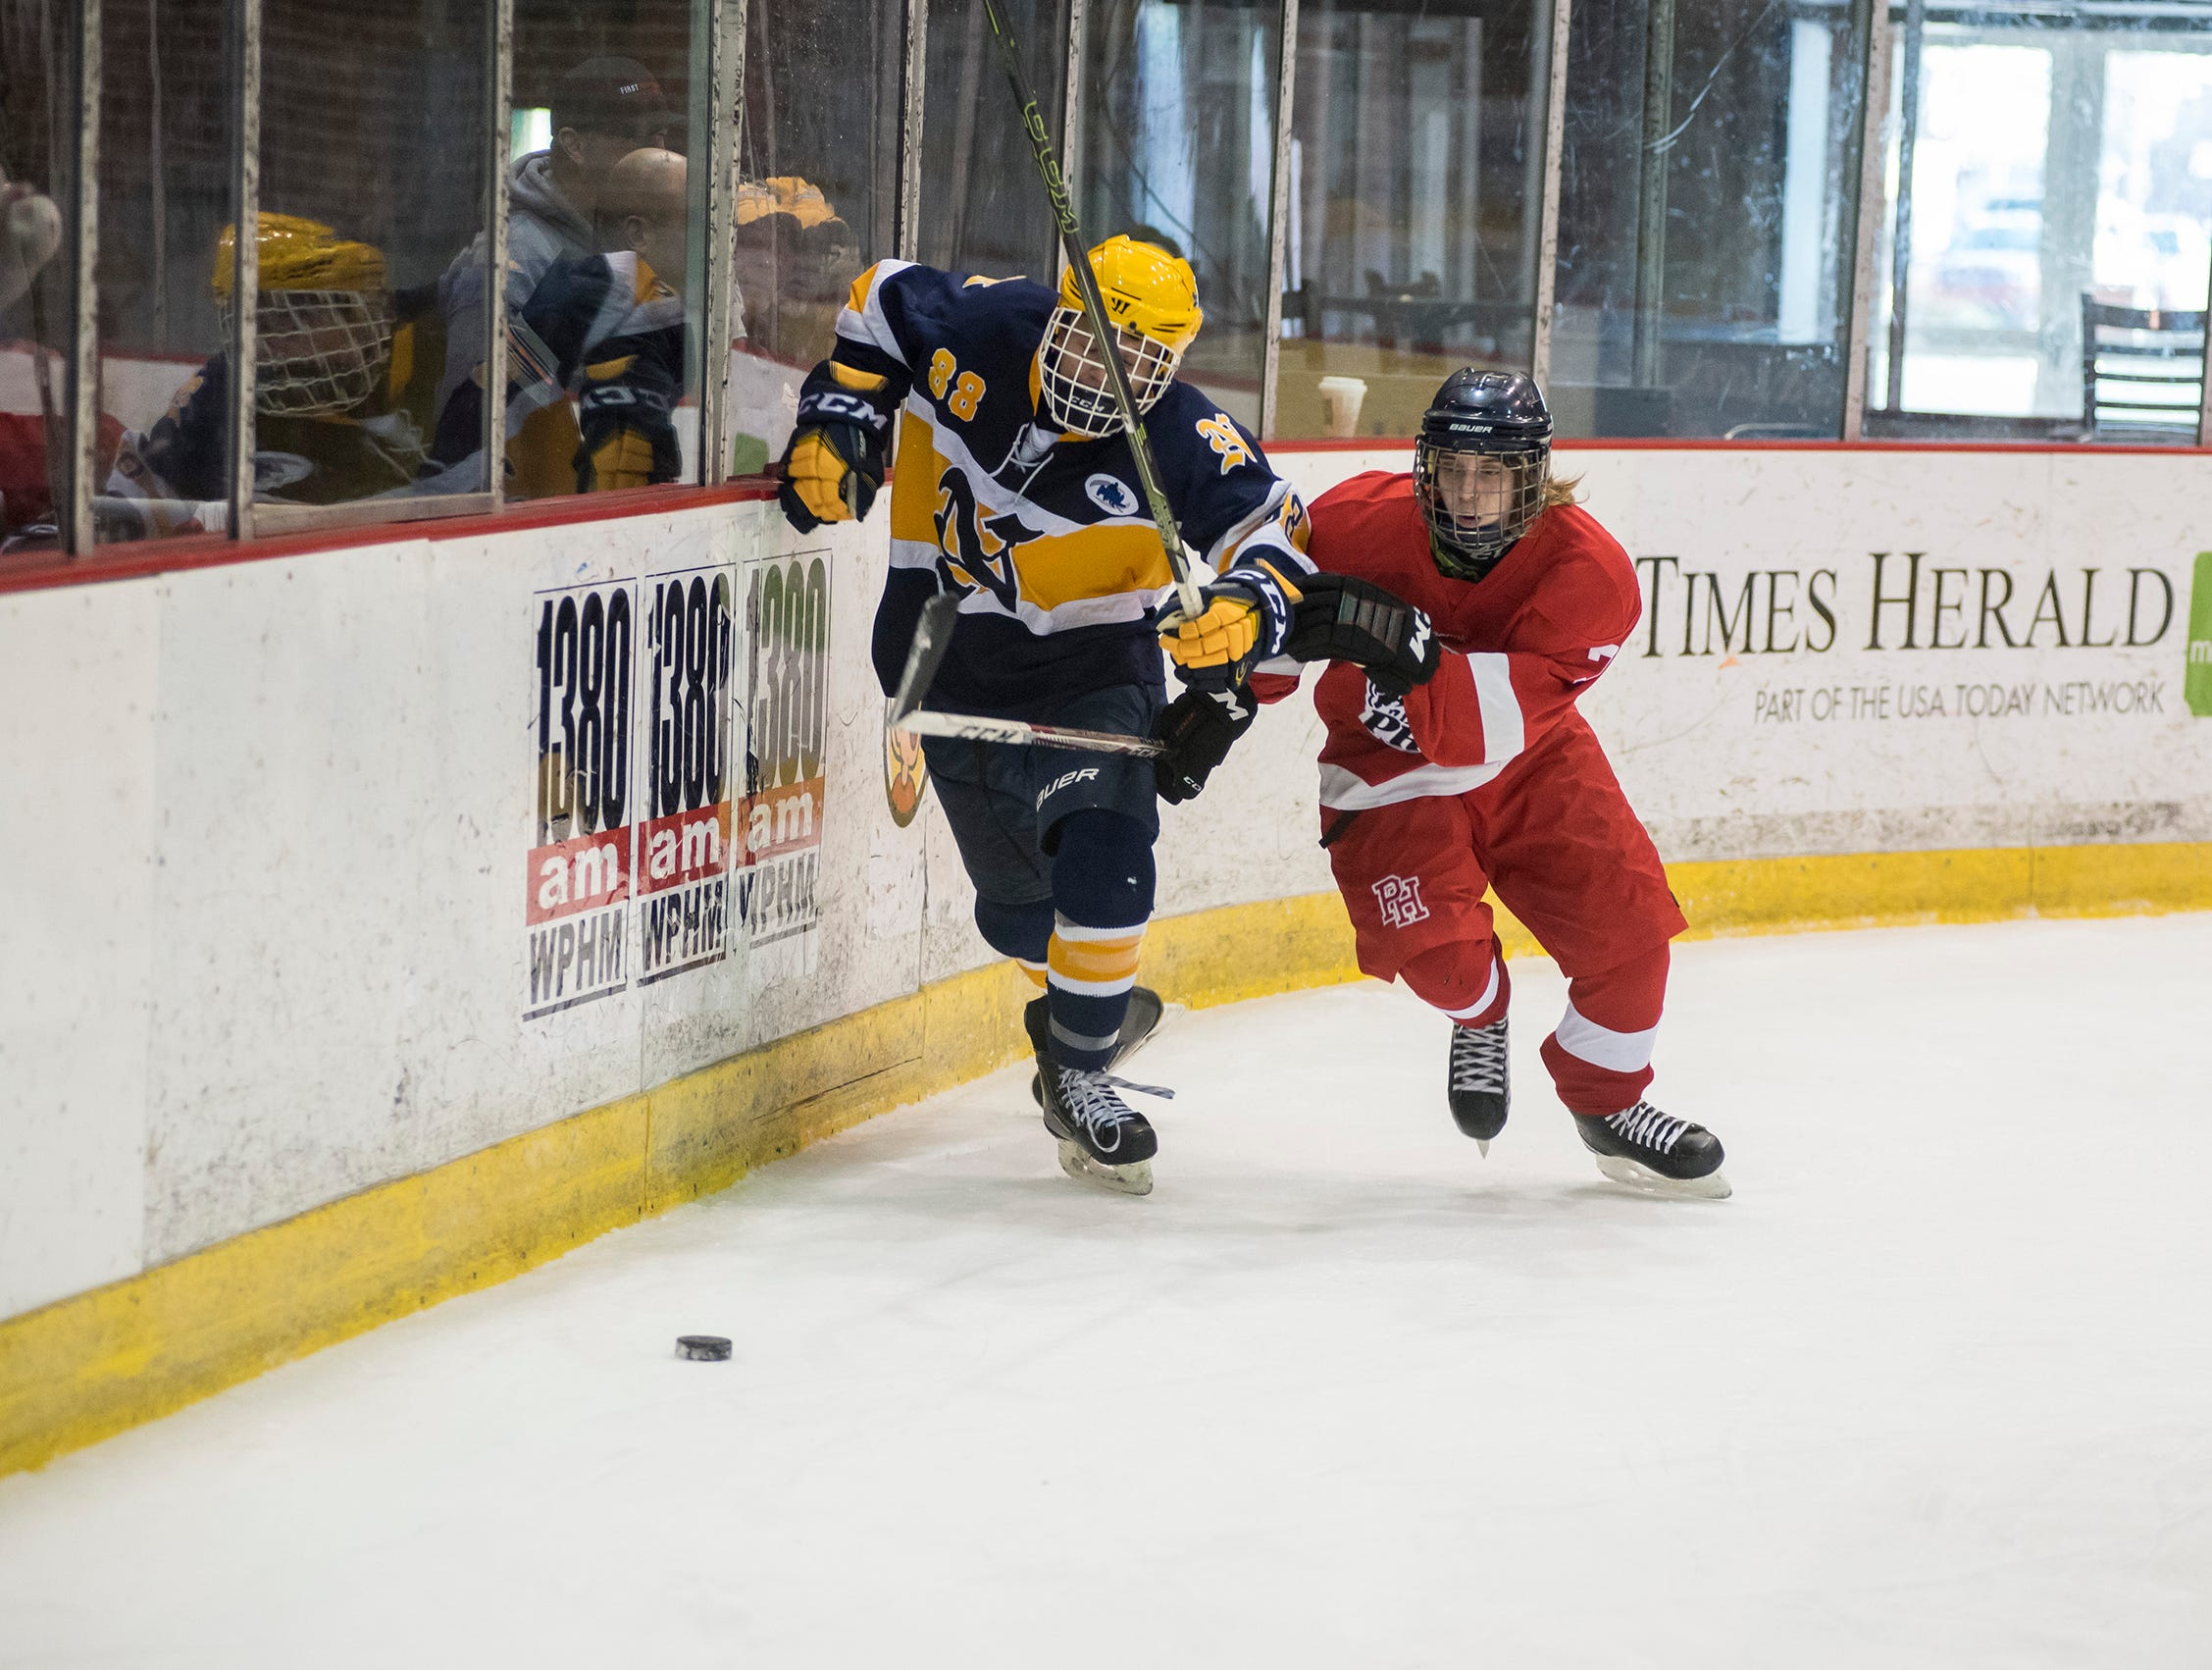 Port Huron Northern High School forward Dominic Ruiz (88) and Port Huron High School forward Mason Powell race for the puck during the Larry Manz Holiday Hockey Tournament Friday, Nov. 23, 2018 at McMorran Arena.